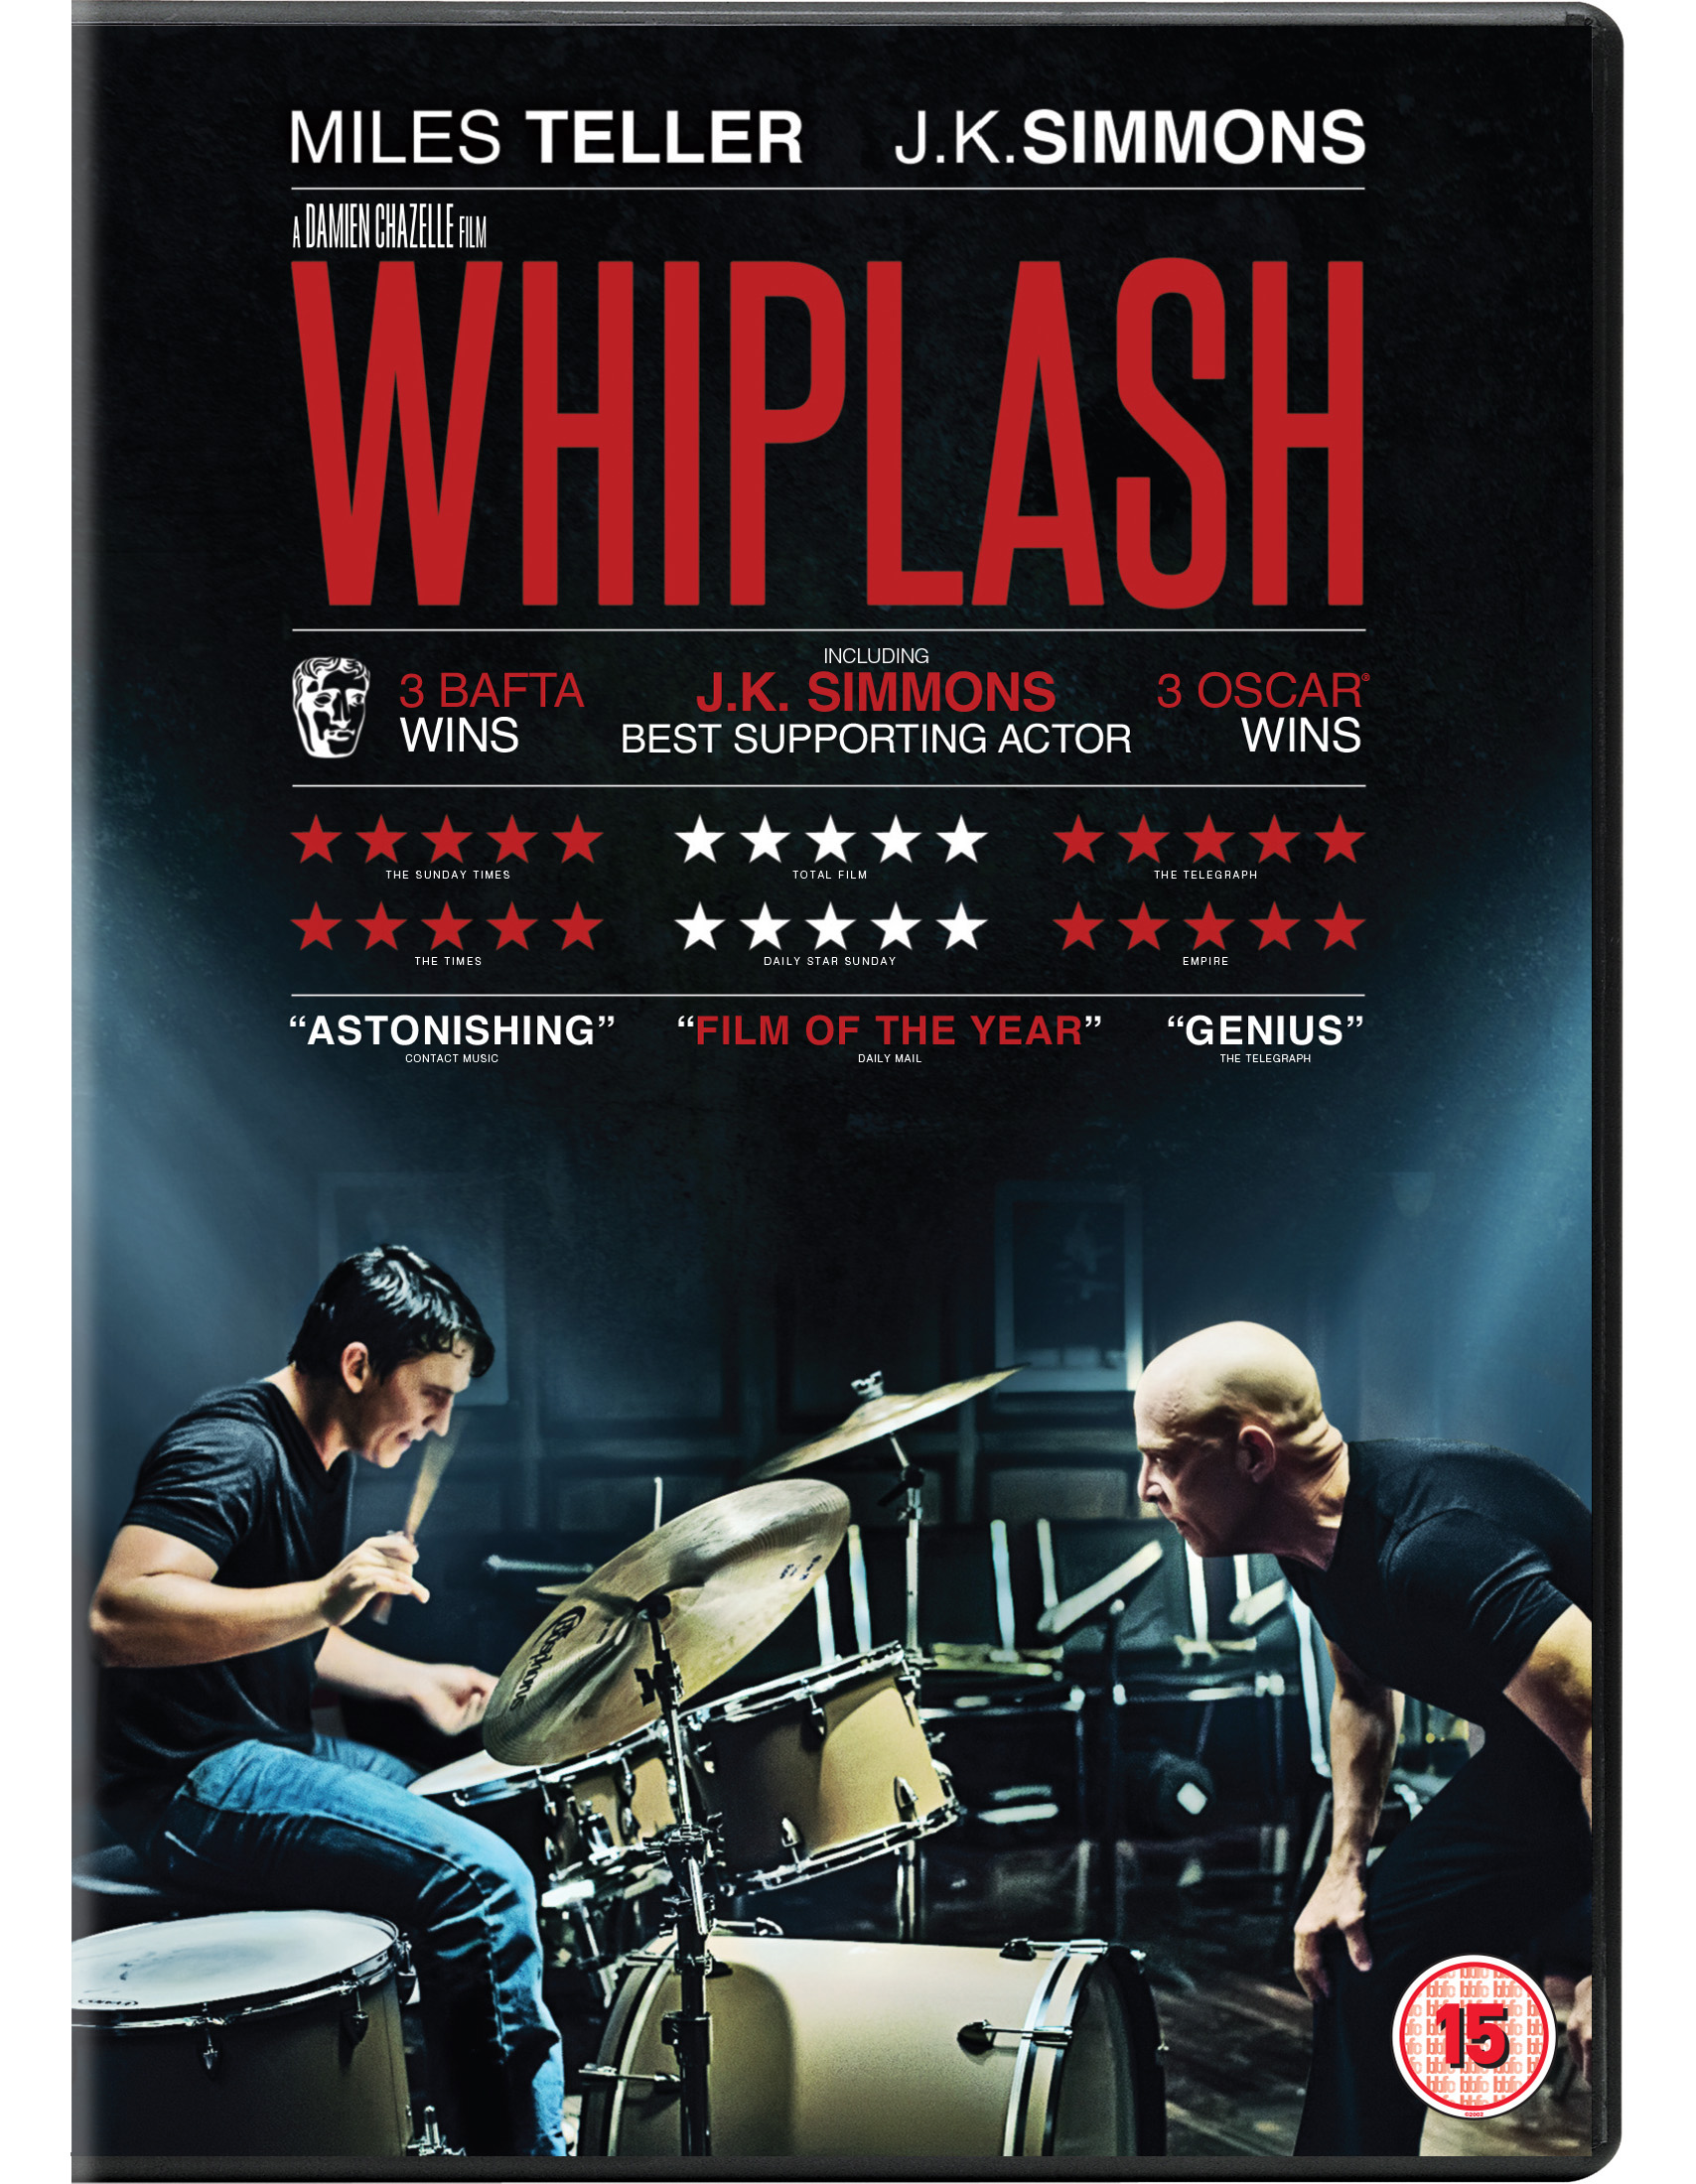 Miles Teller and J.K. Simmons in Whiplash - out on DVD June 1st (Picture: Sony)